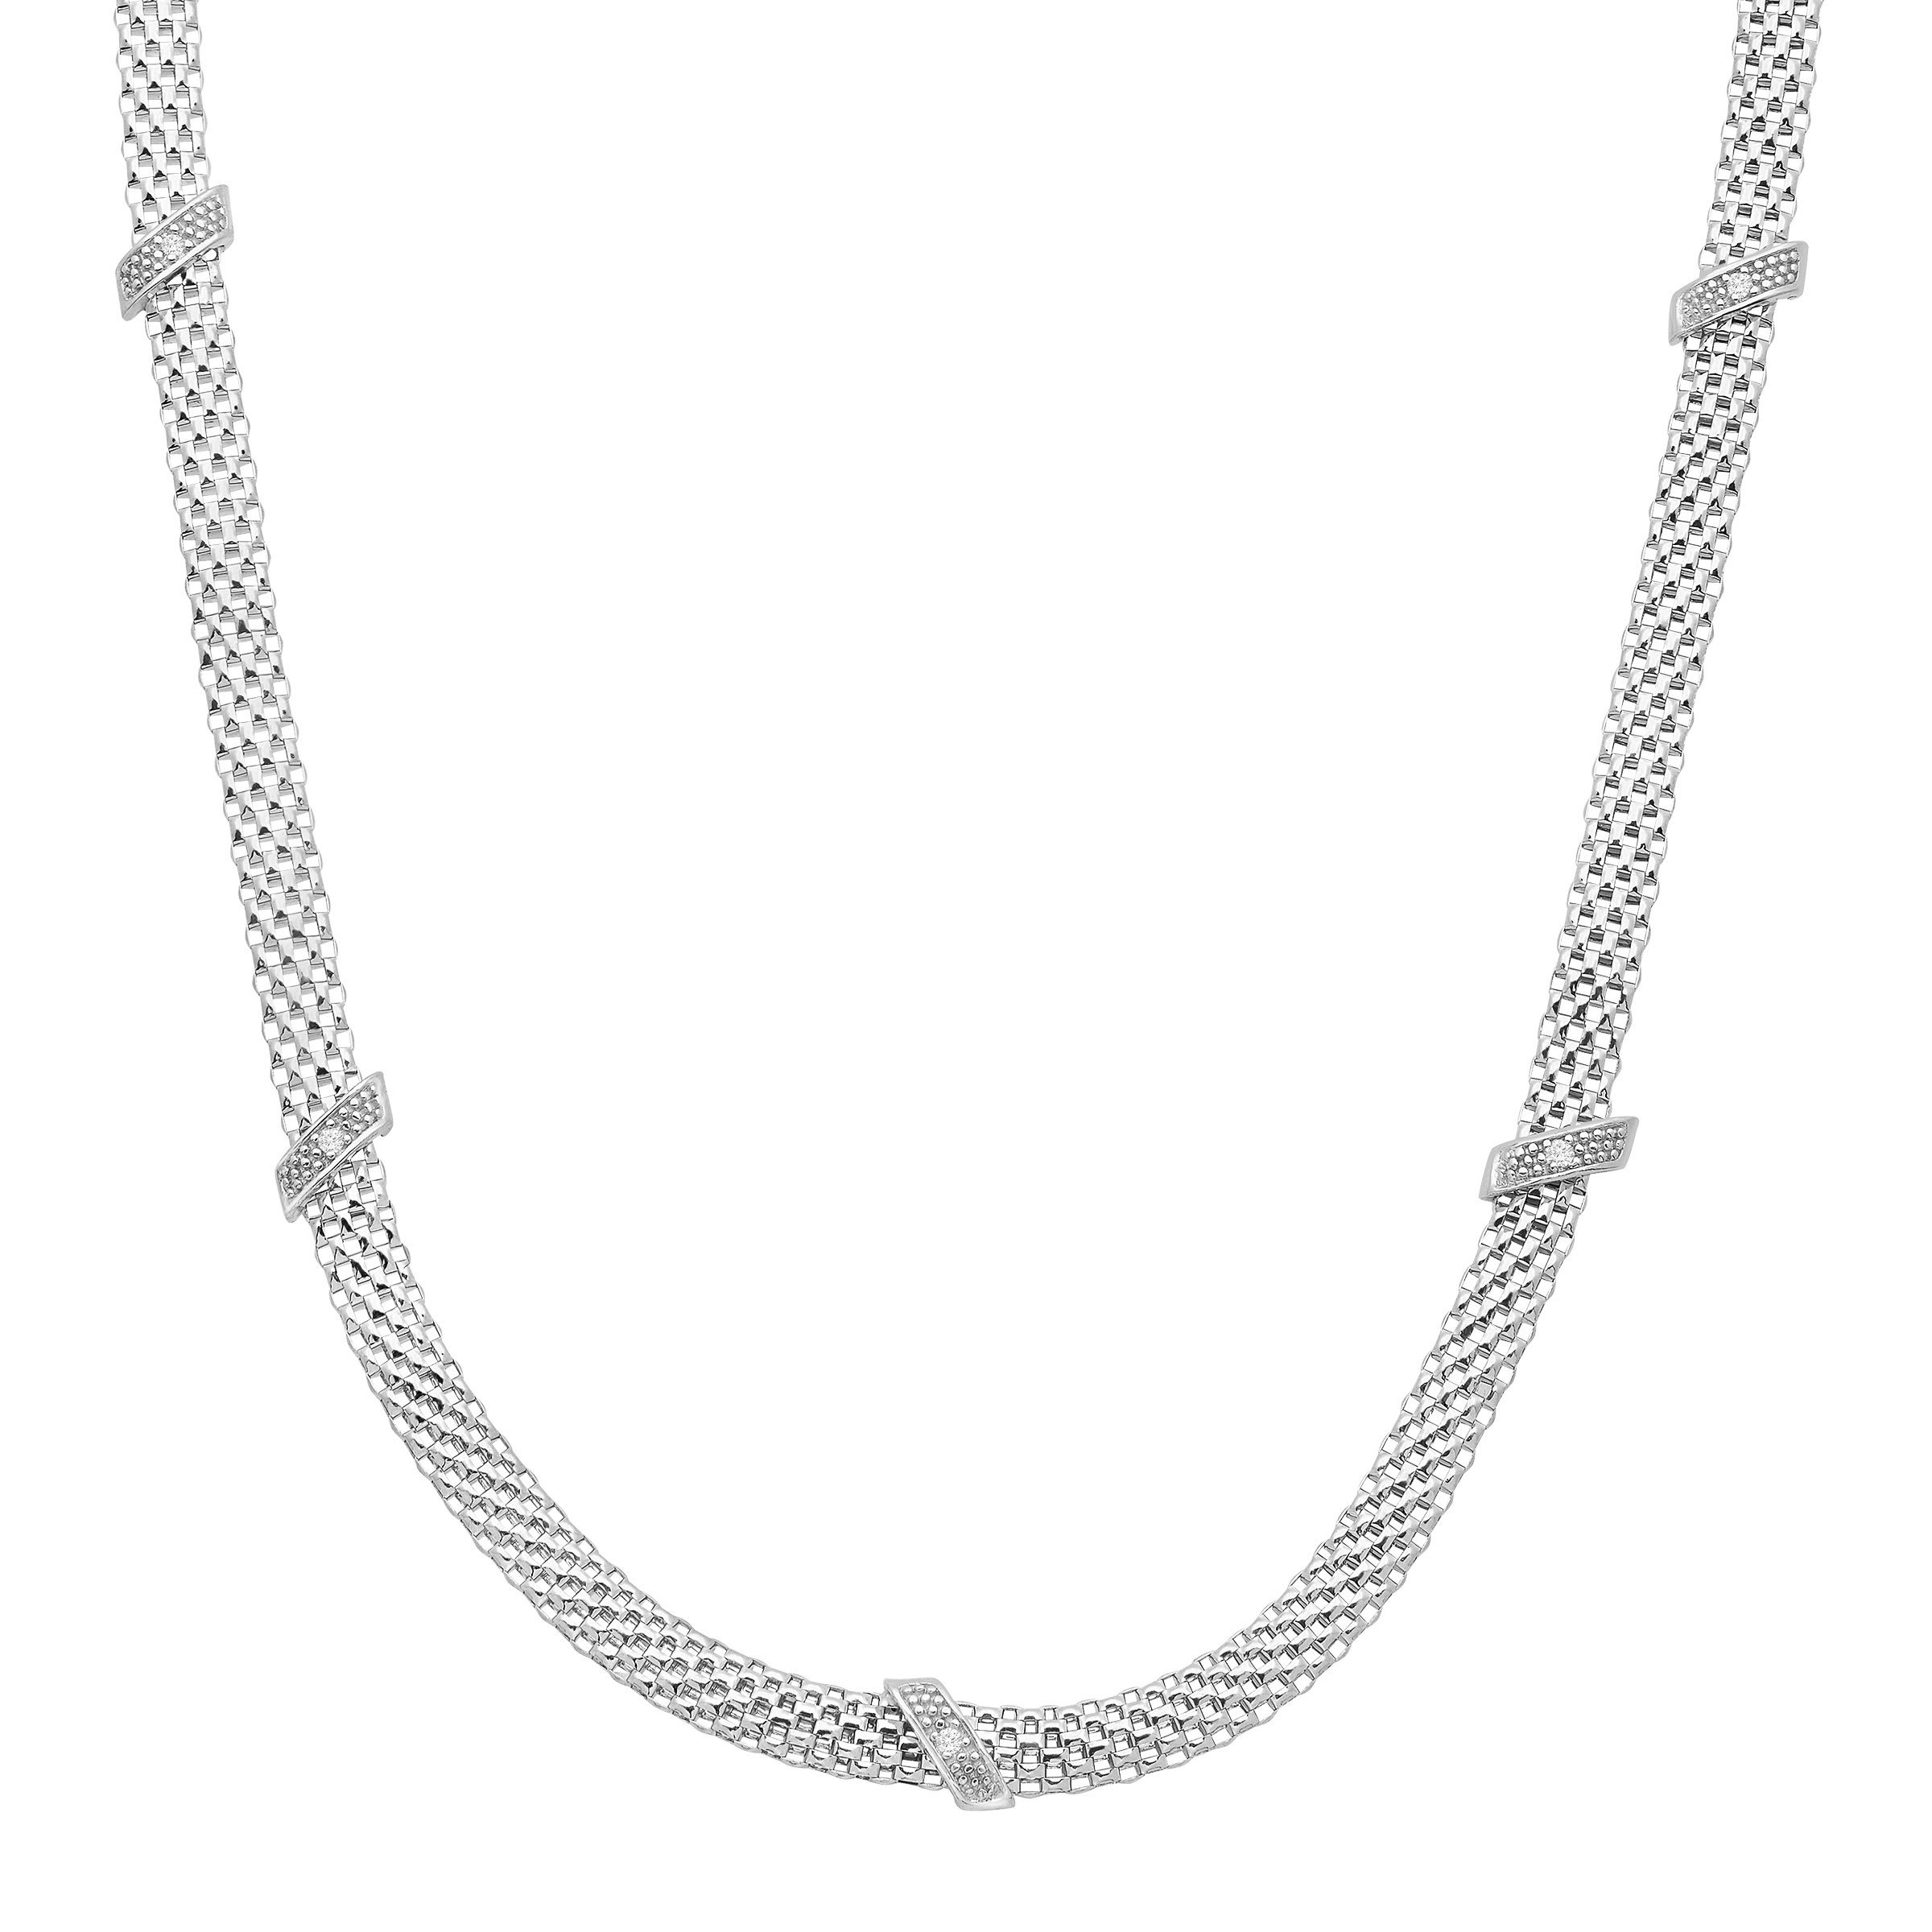 Mesh Cage Necklace with Diamonds in Sterling Silver by Finecraft